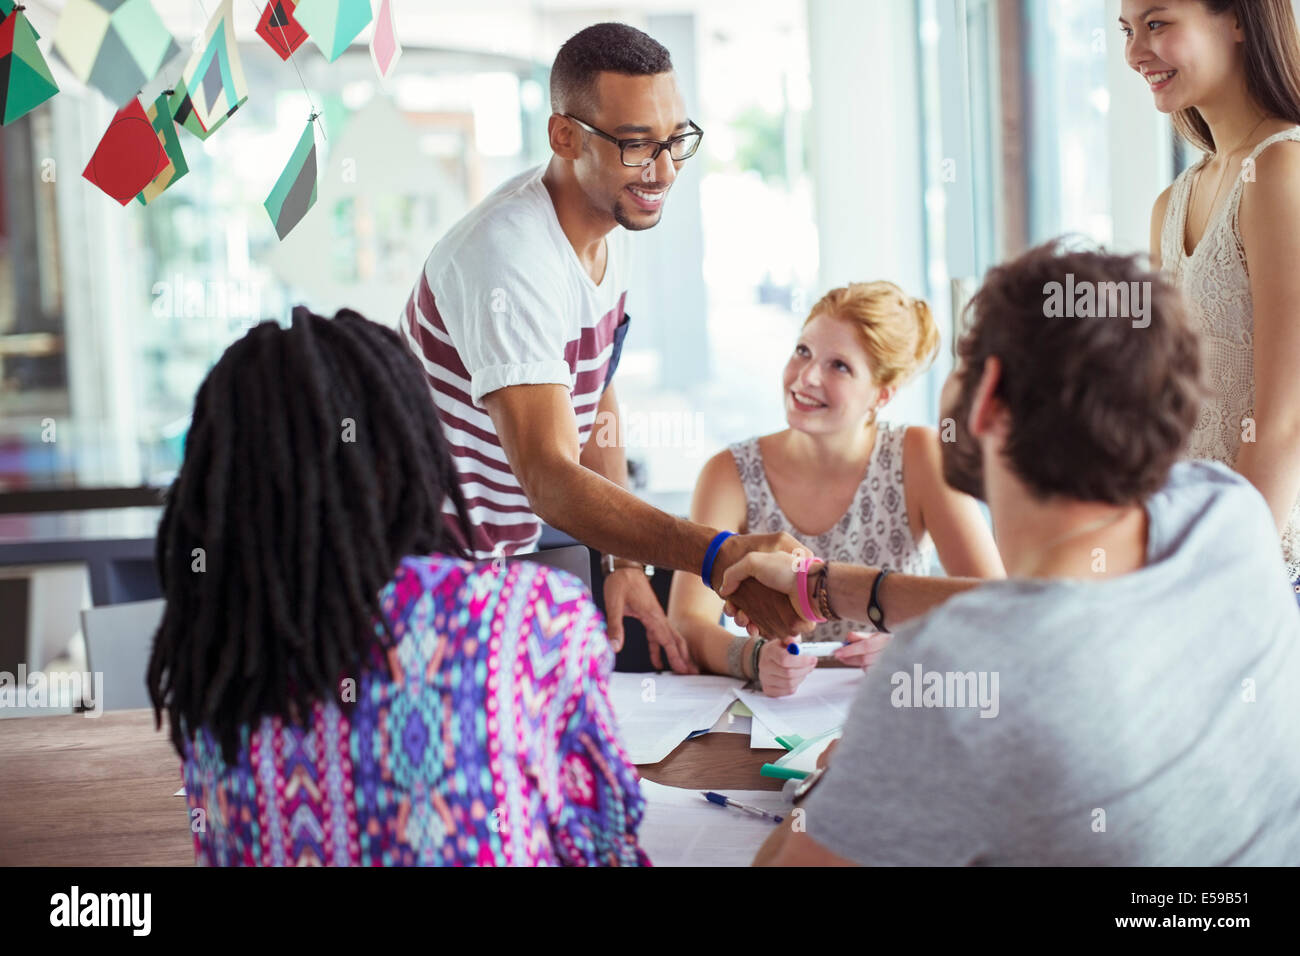 People shaking hands in office - Stock Image